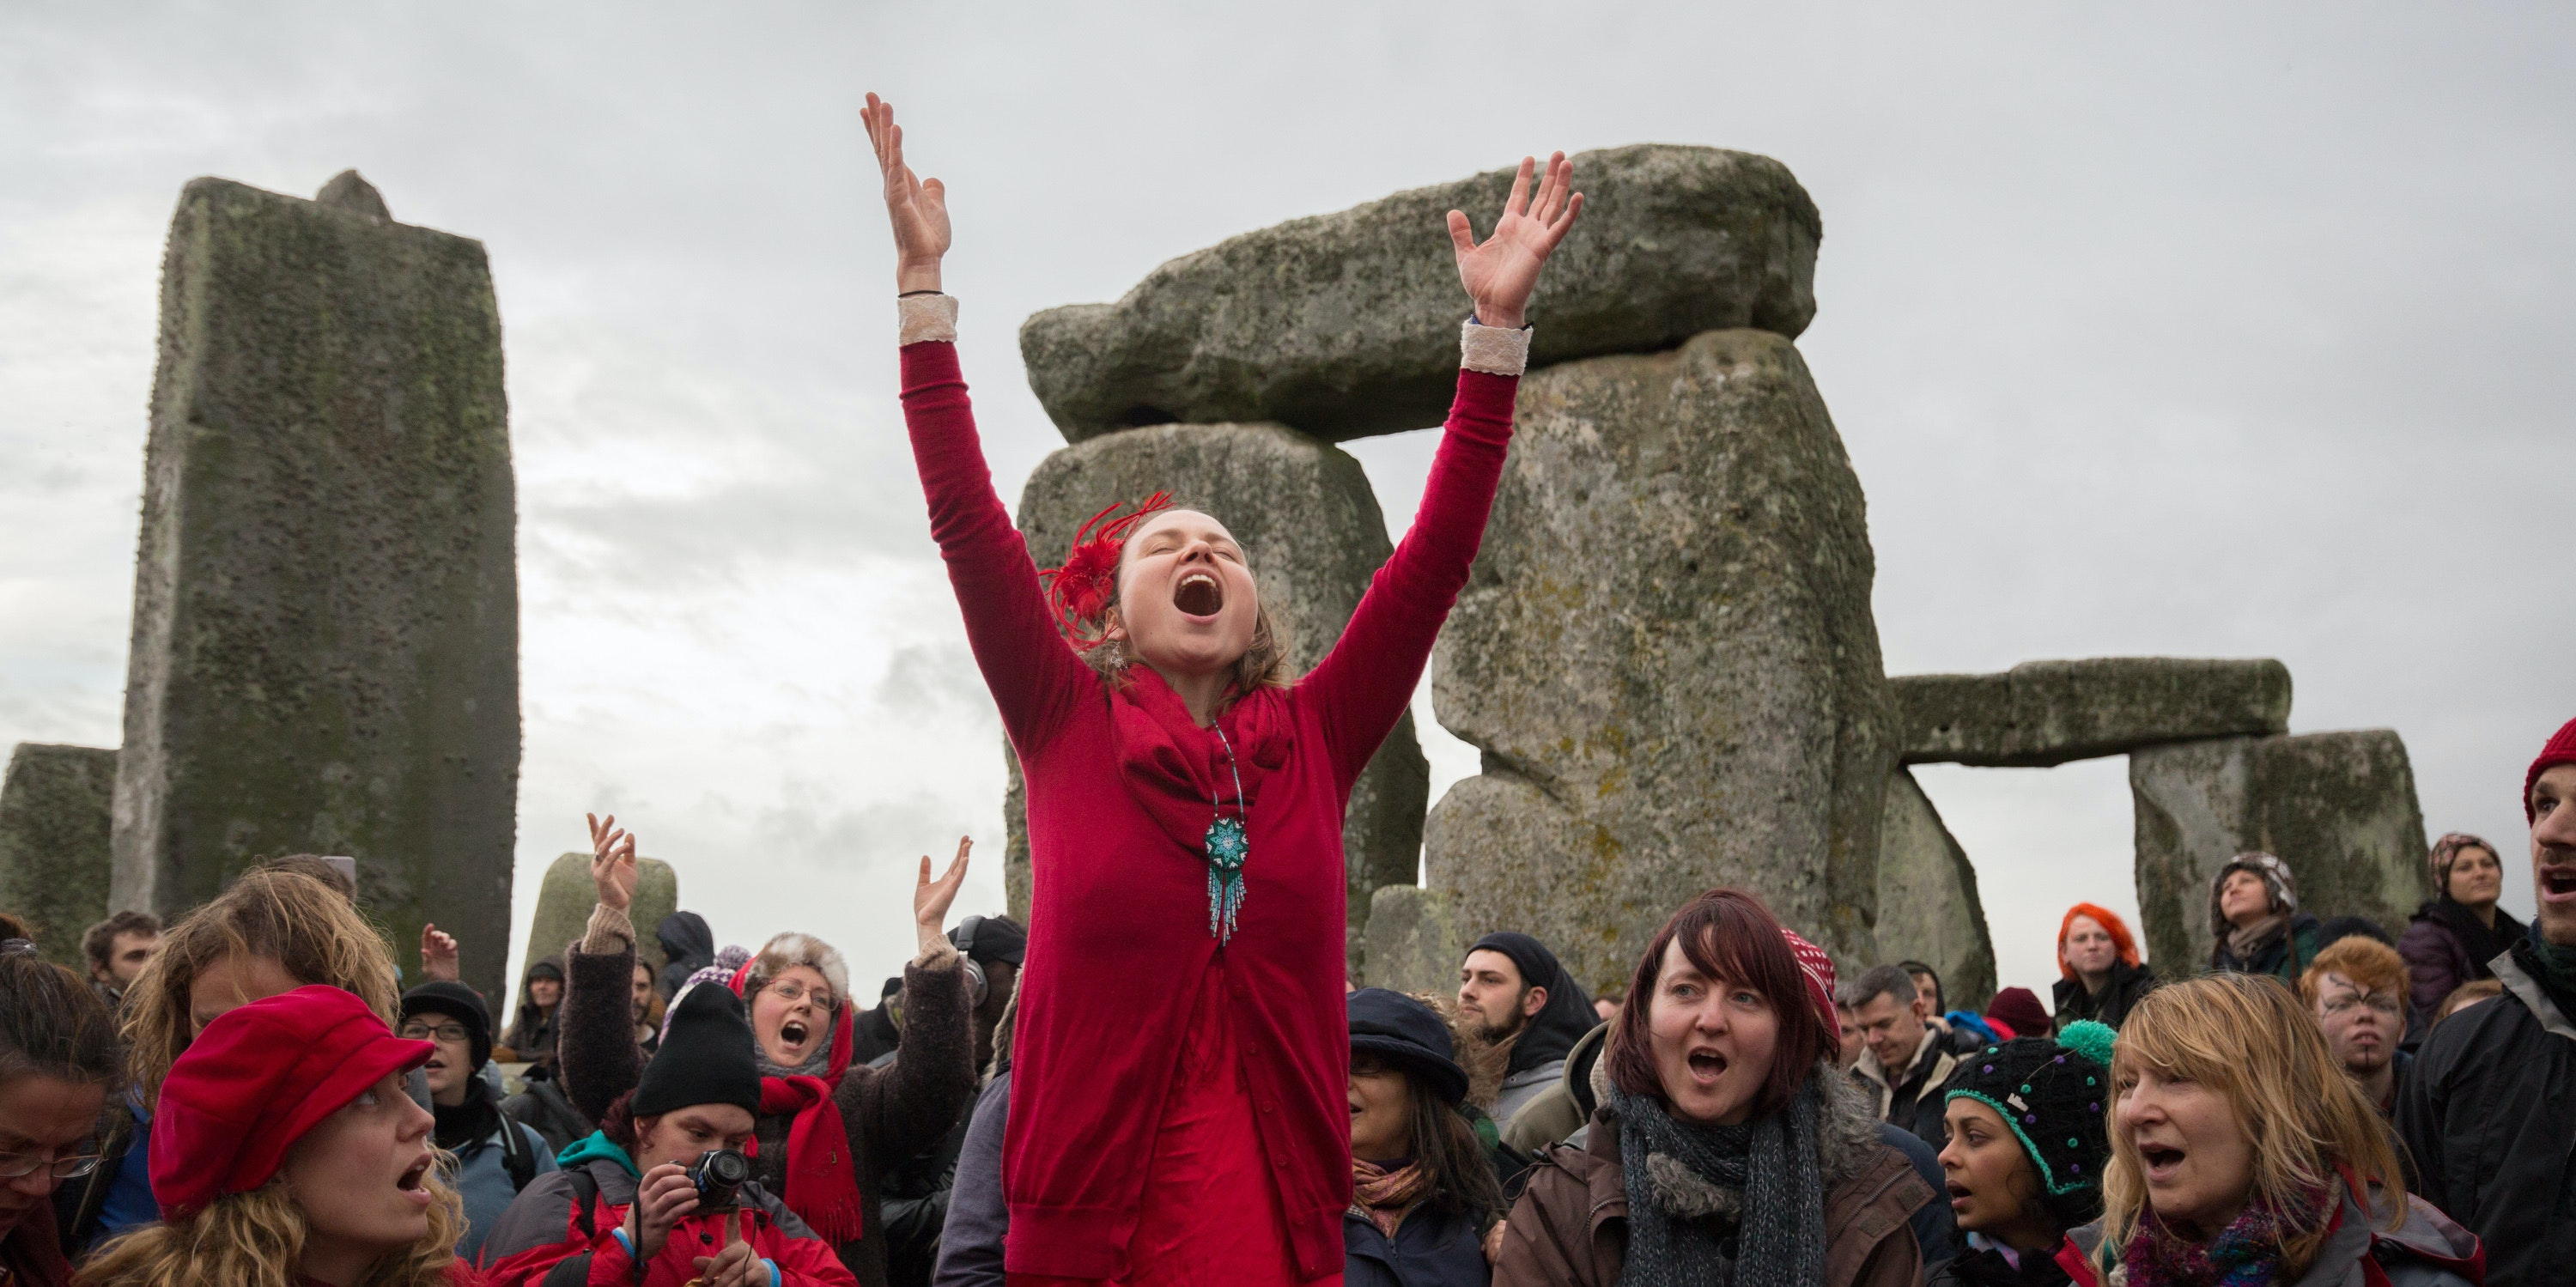 Want to Become a Pagan? Depends on Whether You Ask a Wiccan, Neo-Druid or Gaian